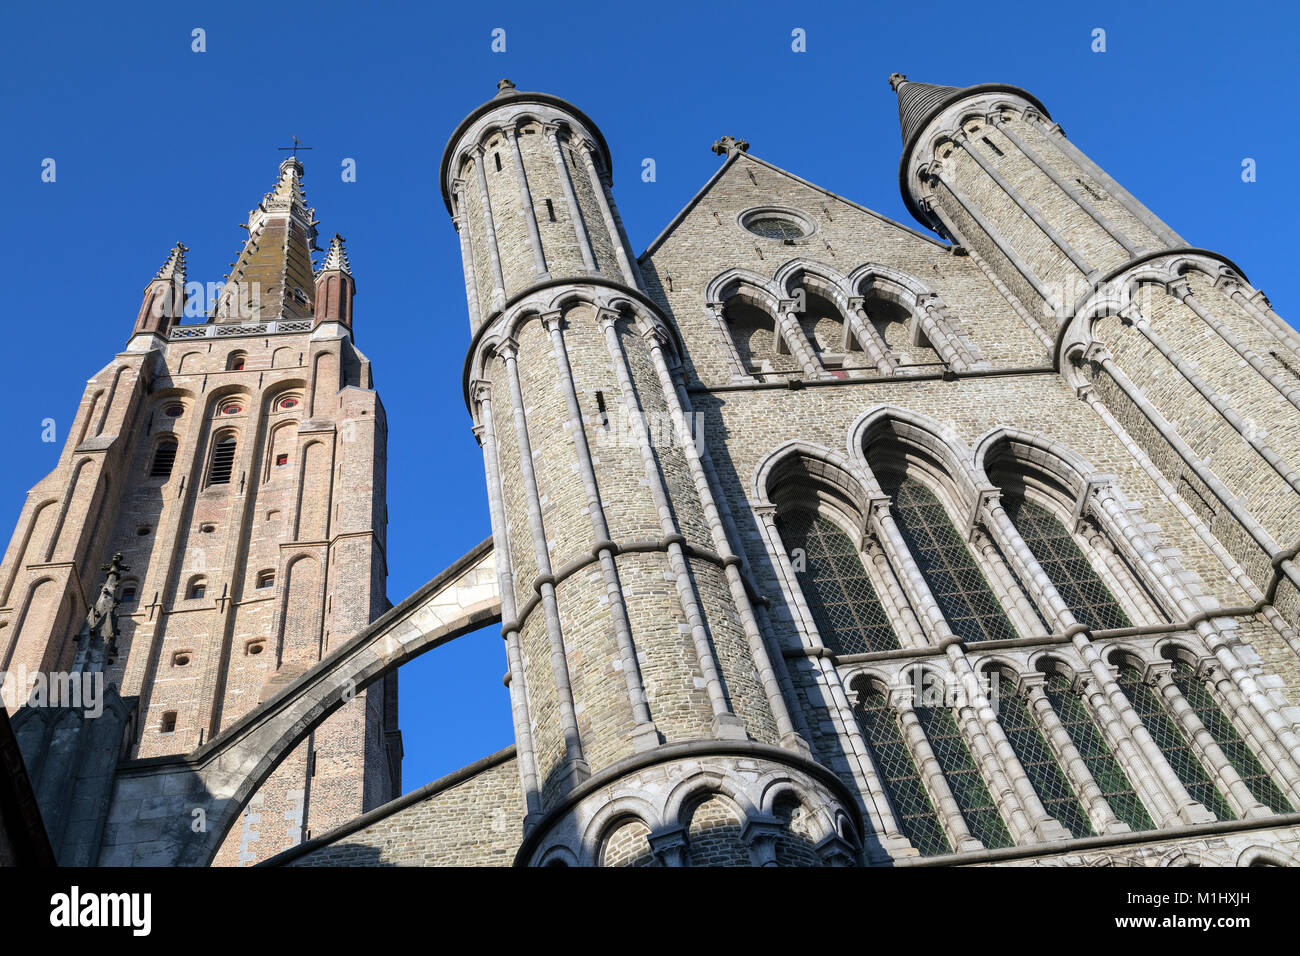 The Gothic architecture of the Roman Catholic Church of Our Lady in the city of Bruges in Belgium. - Stock Image